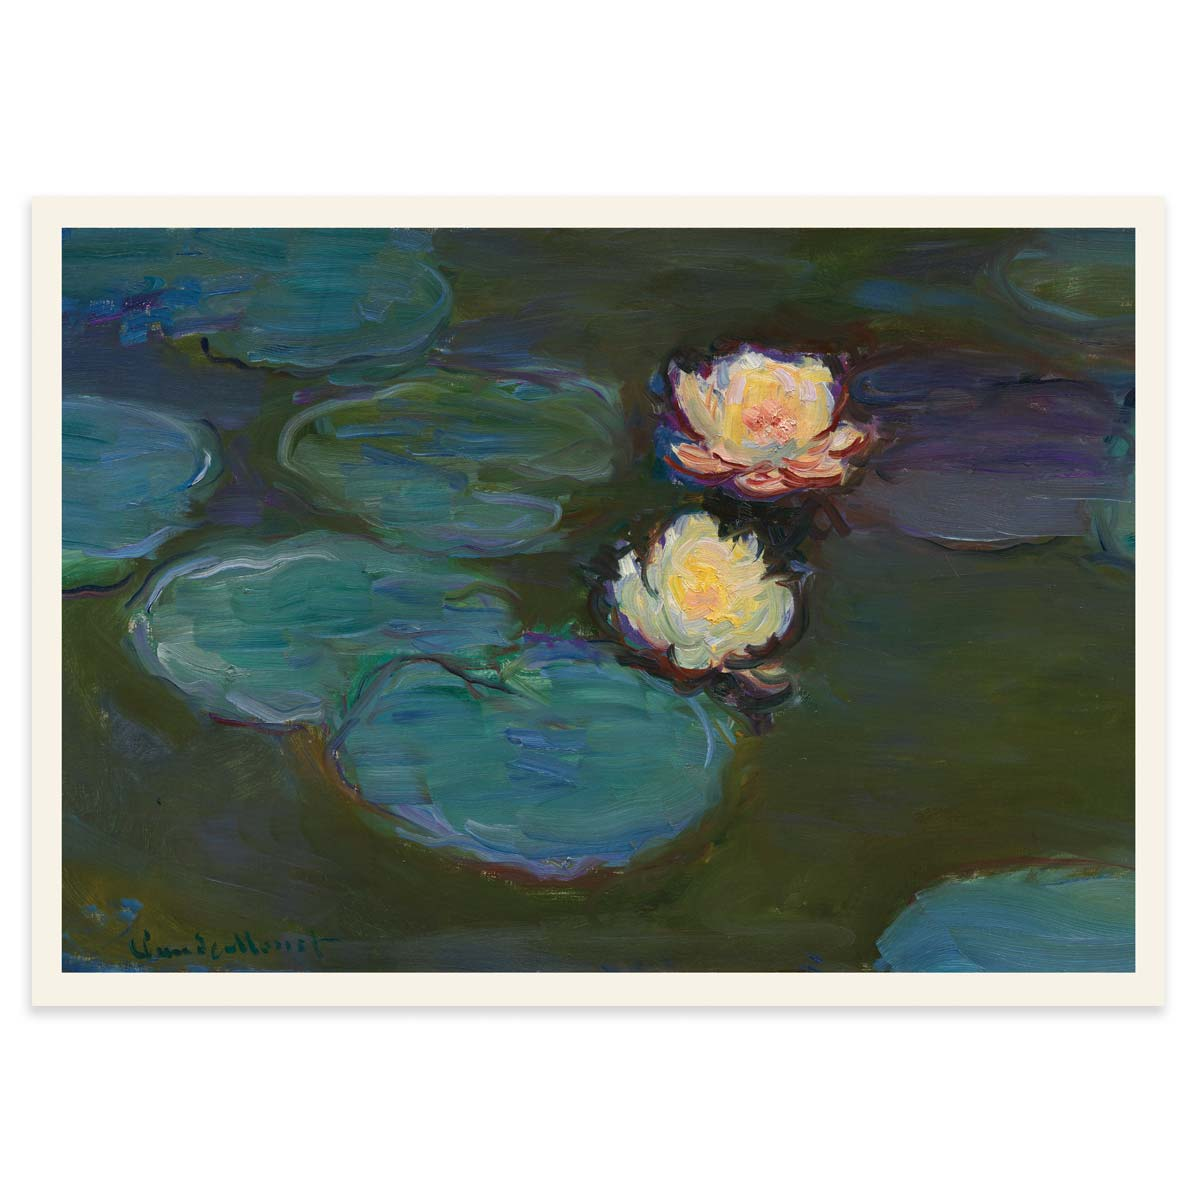 Nympheas Poster - Water Lilies by Claude Monet 1897